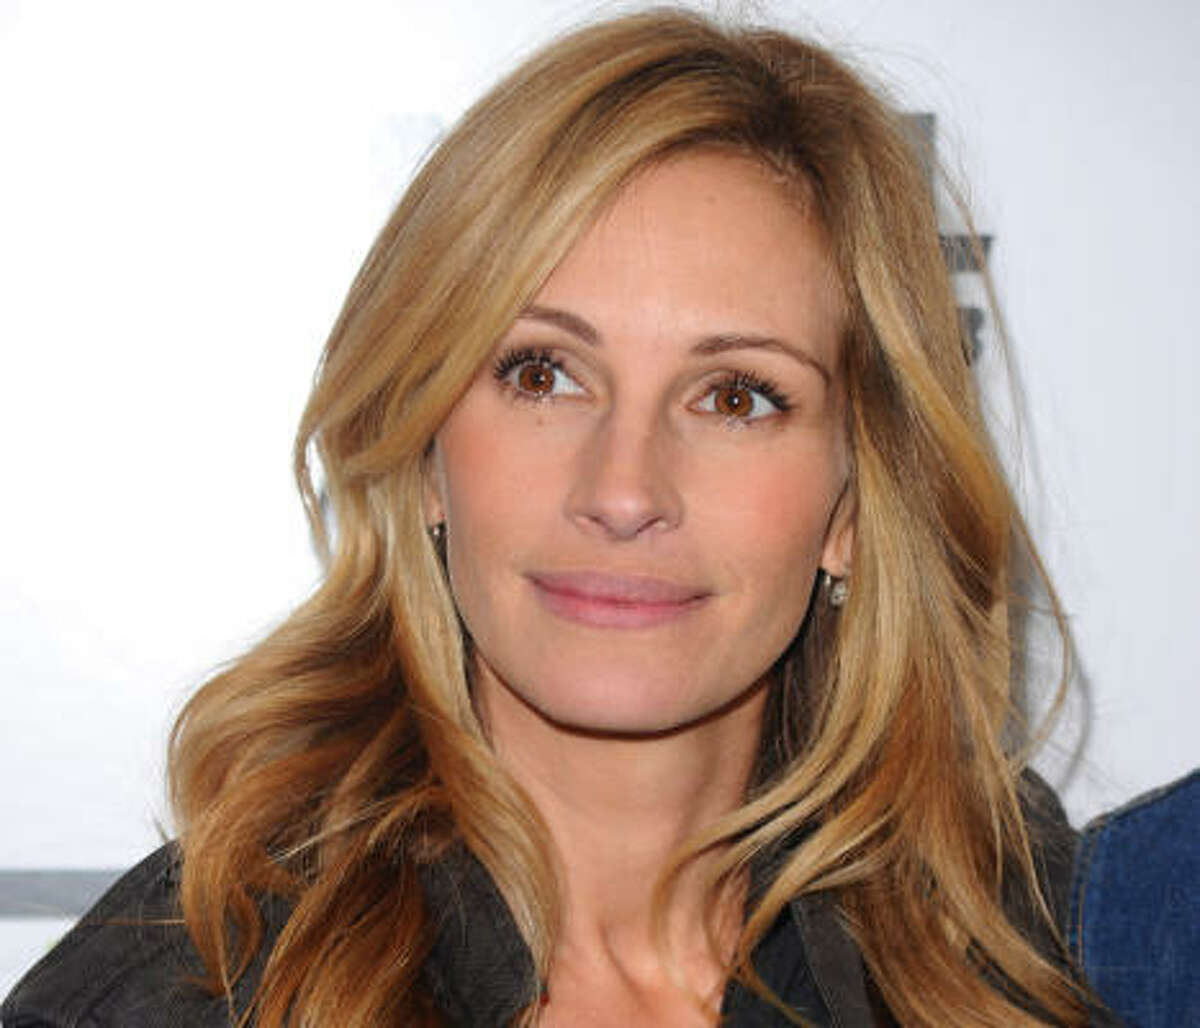 Julia Roberts has topped the list of People's 50 Most Beautiful for the 12th time, but is she really? Vote here.